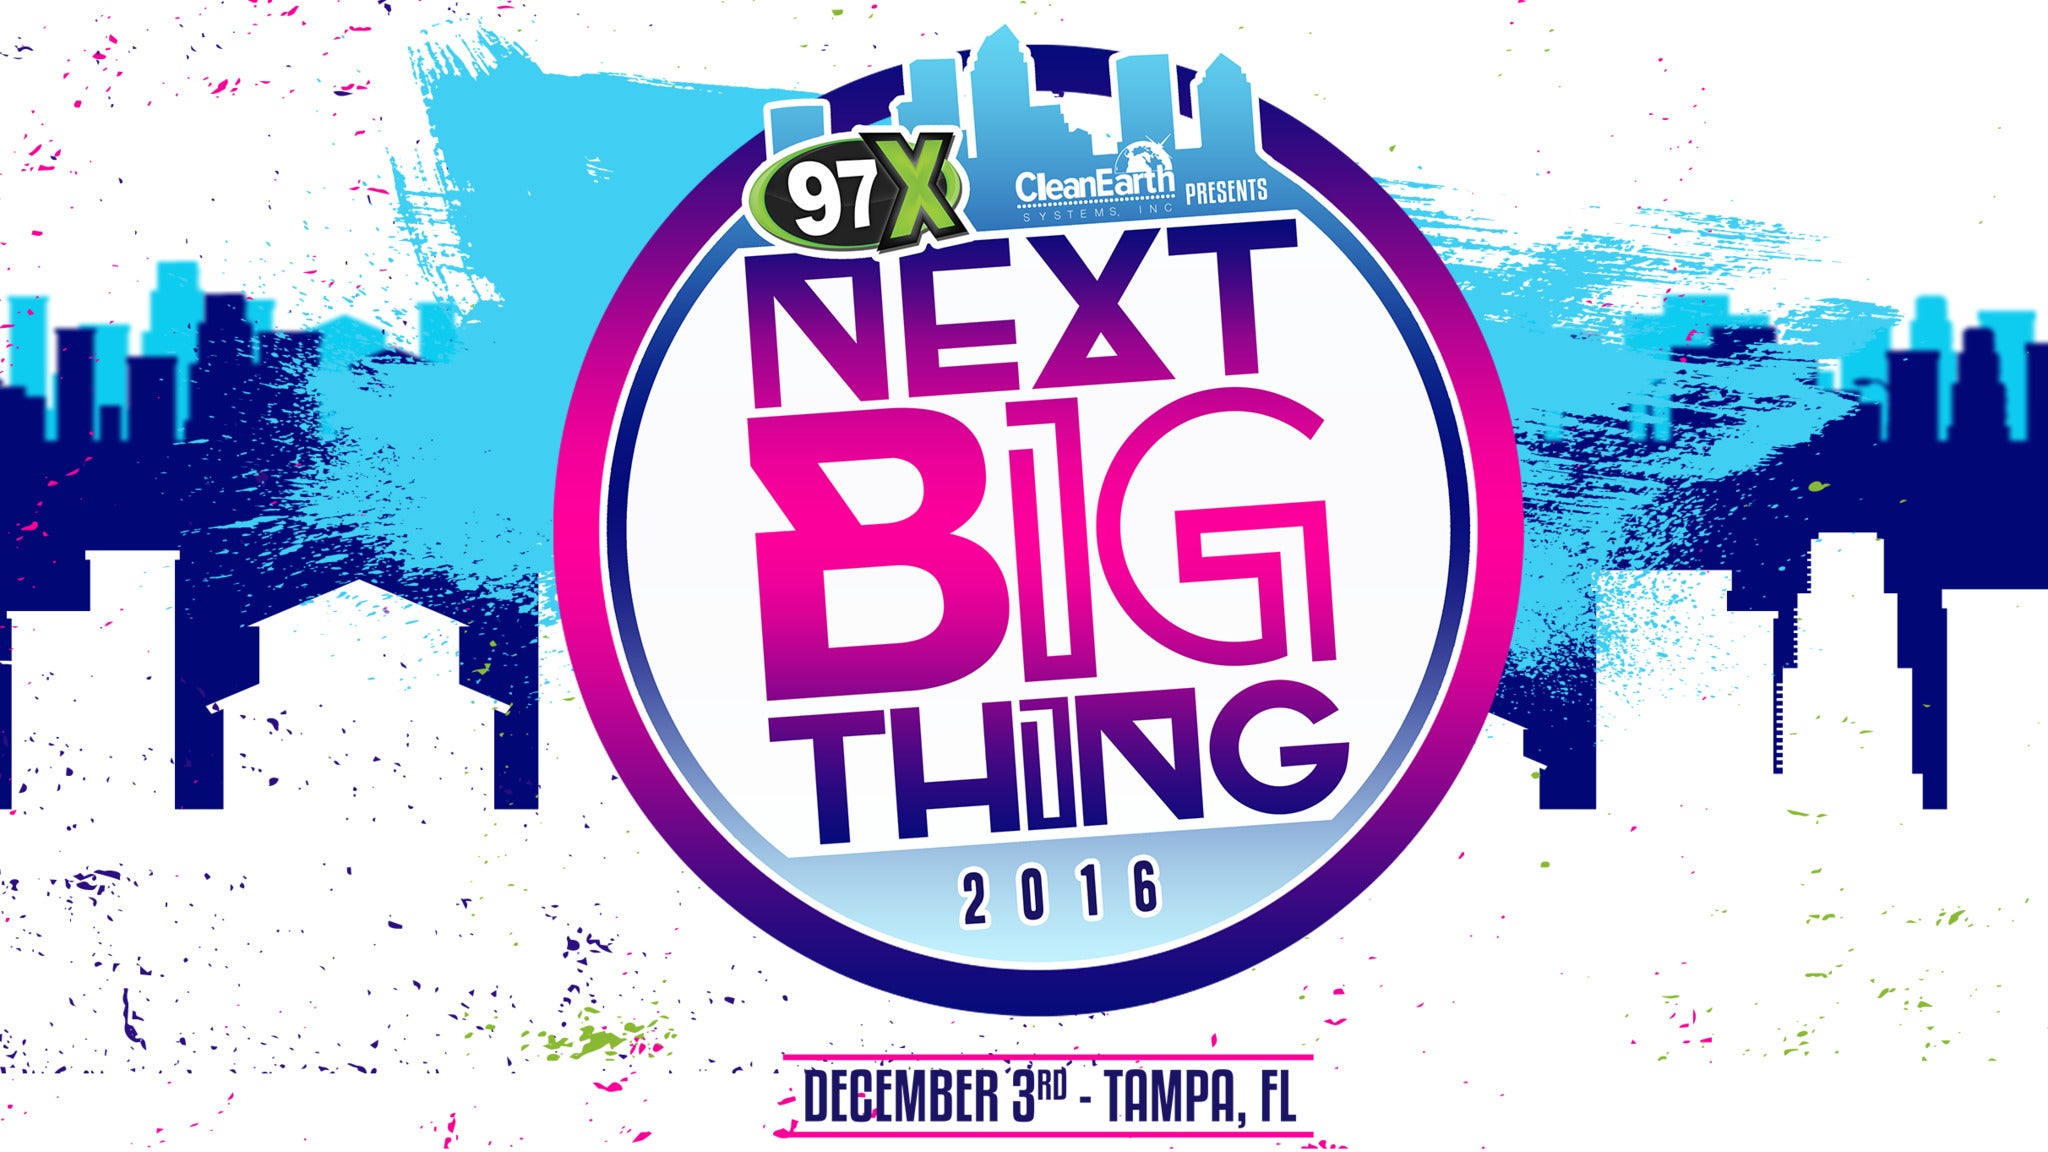 97X Next Big Thing - Tampa, FL 33610